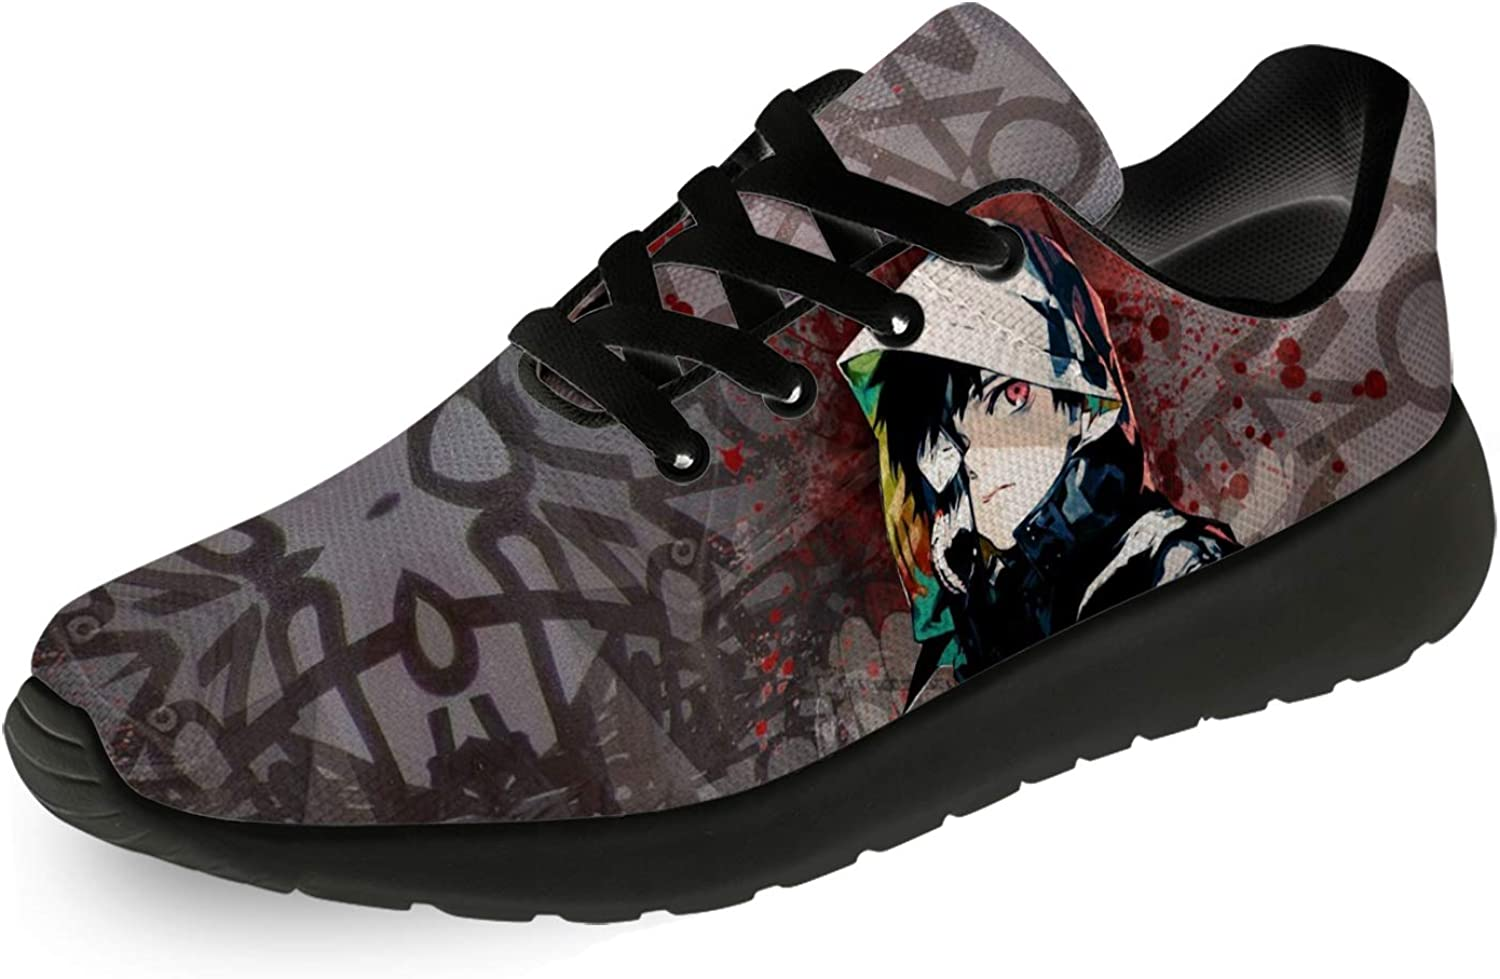 ADIGOW Japanese Anime Soldering Shoes Los Angeles Mall for Women Personalited Anti-Slip Men